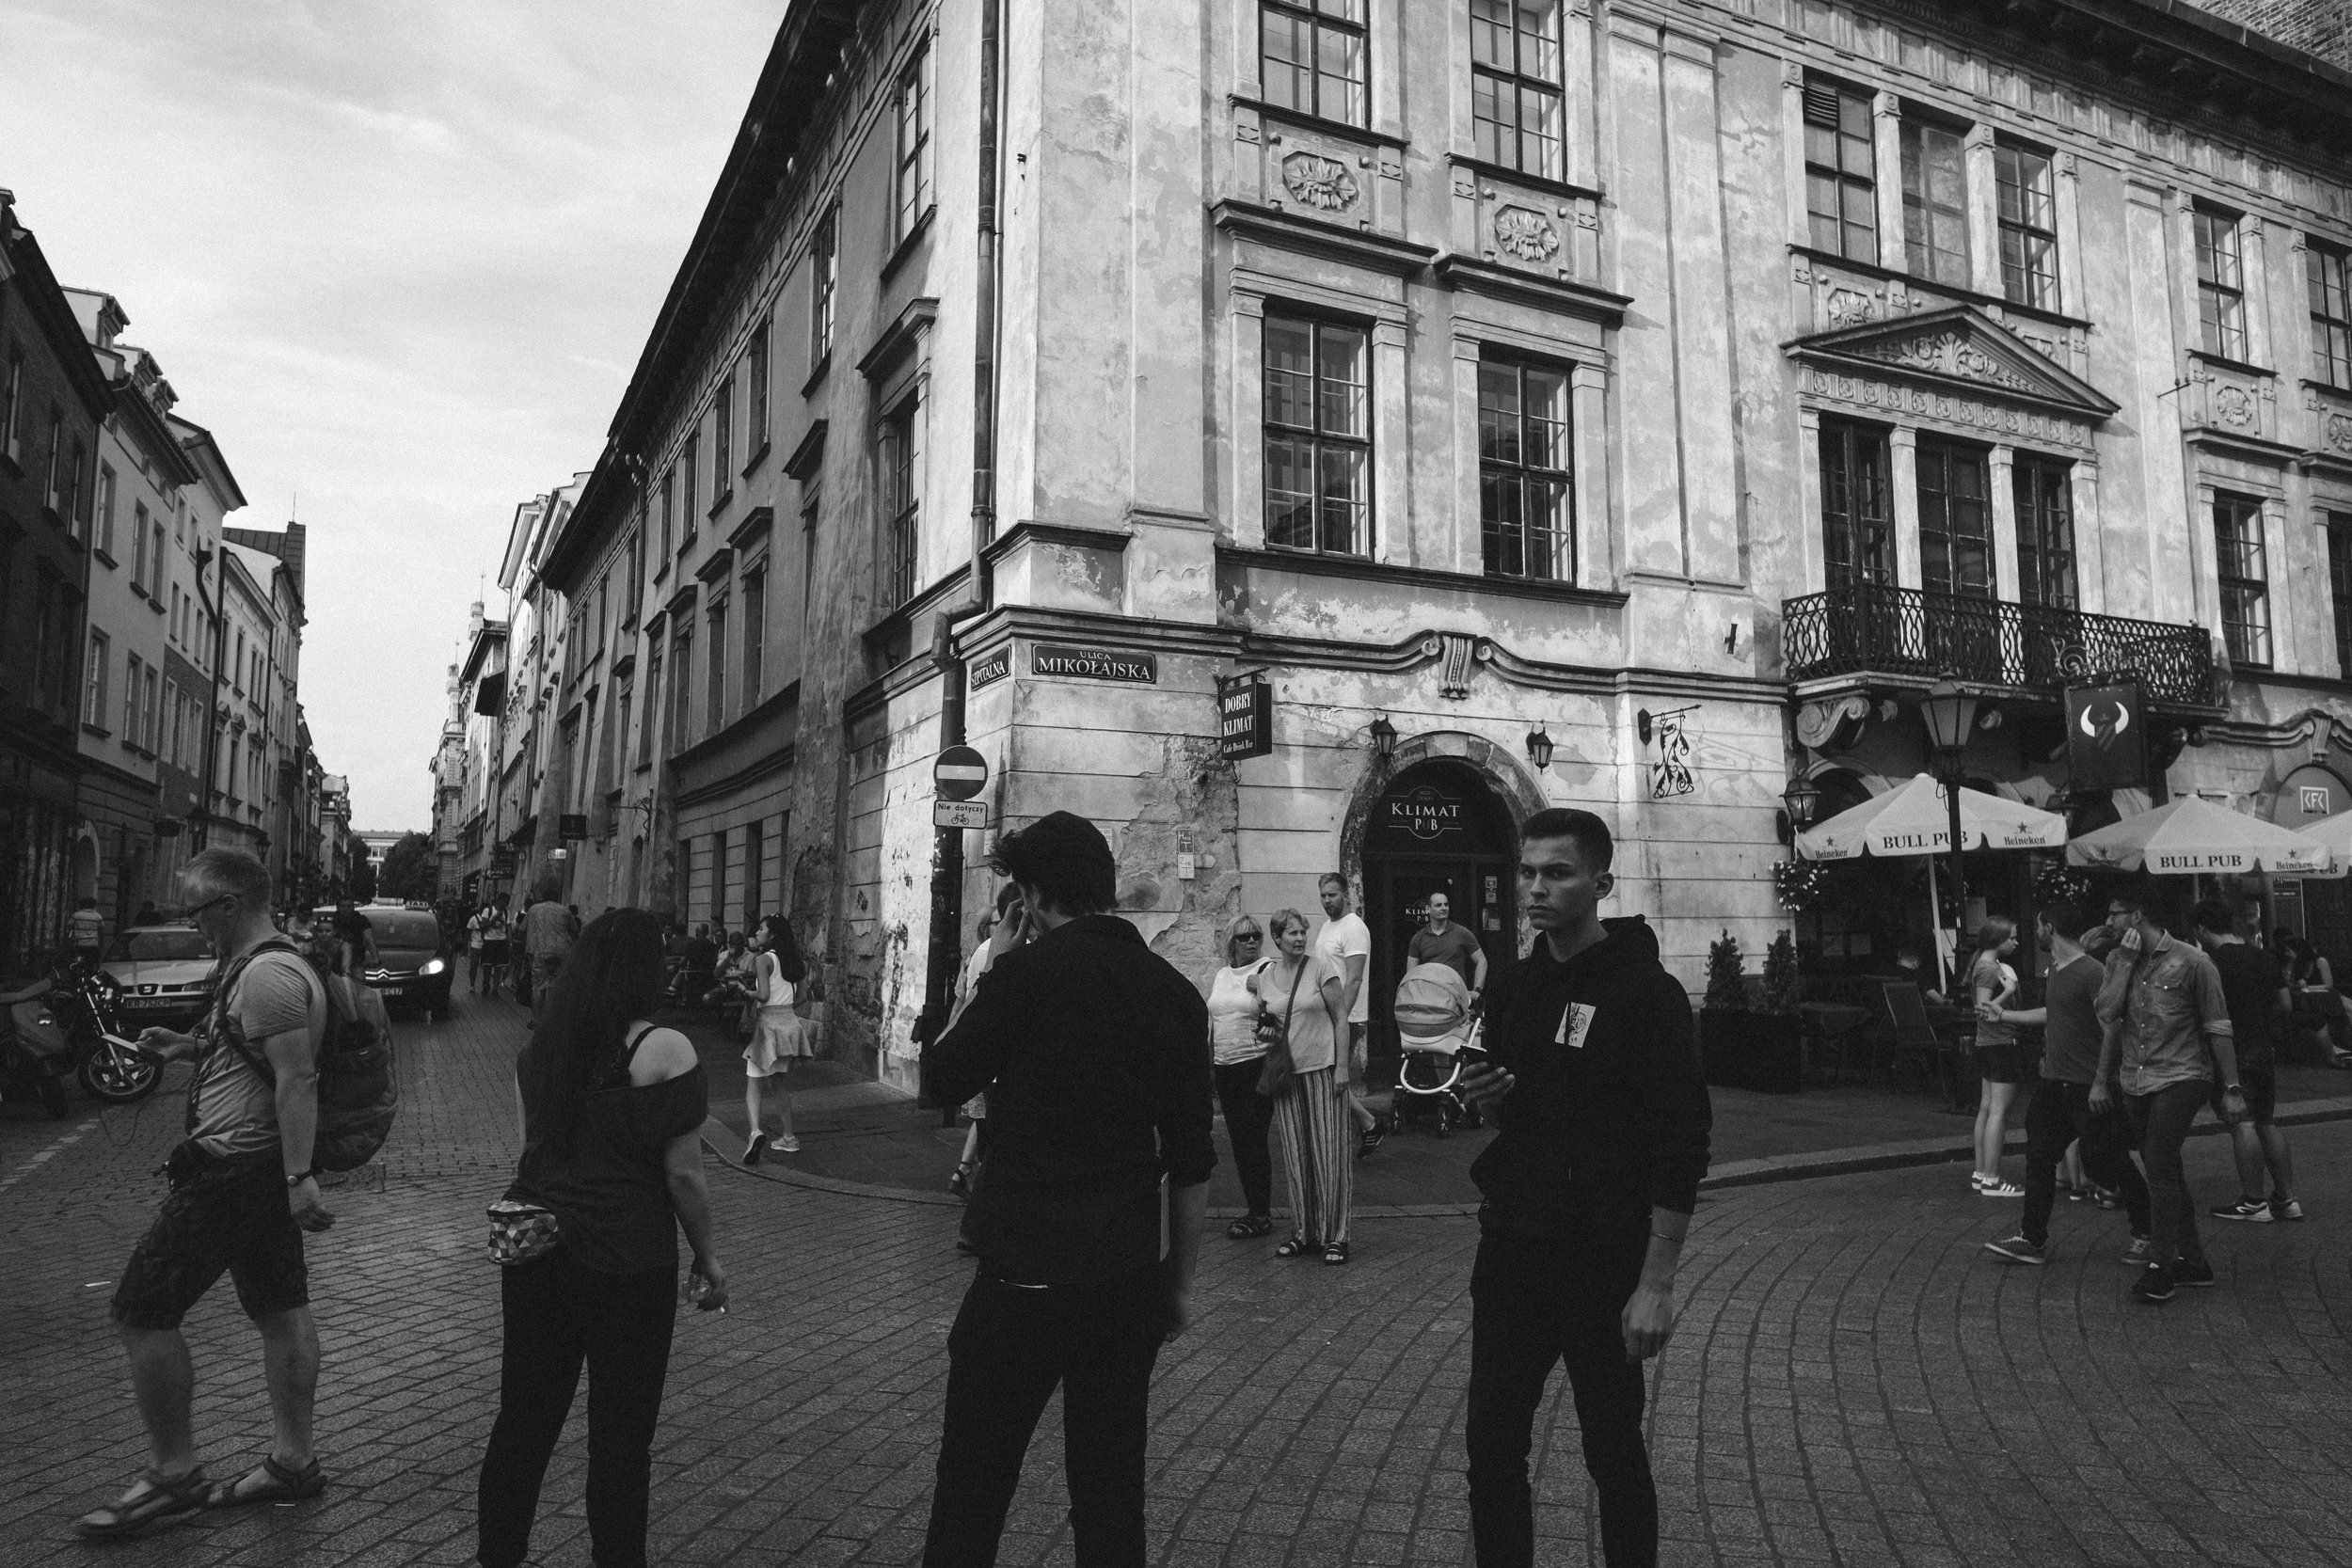 street photography in the old town of Krakow, Poland